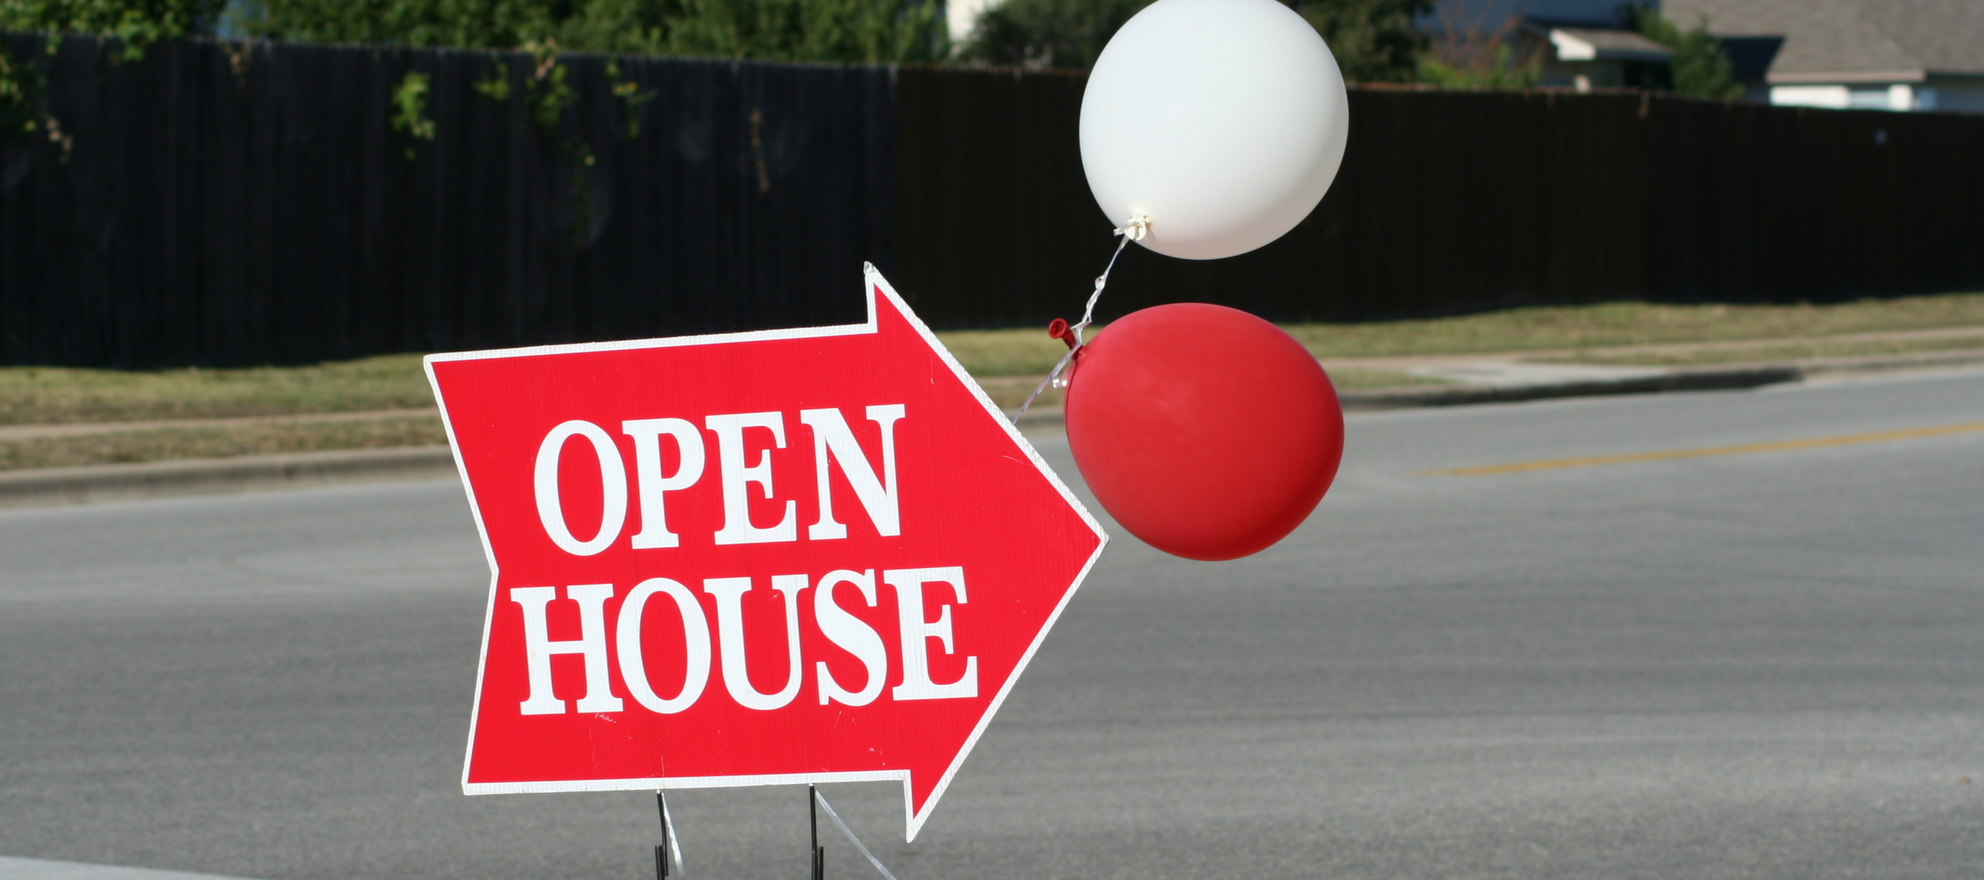 rookie open house mistakes